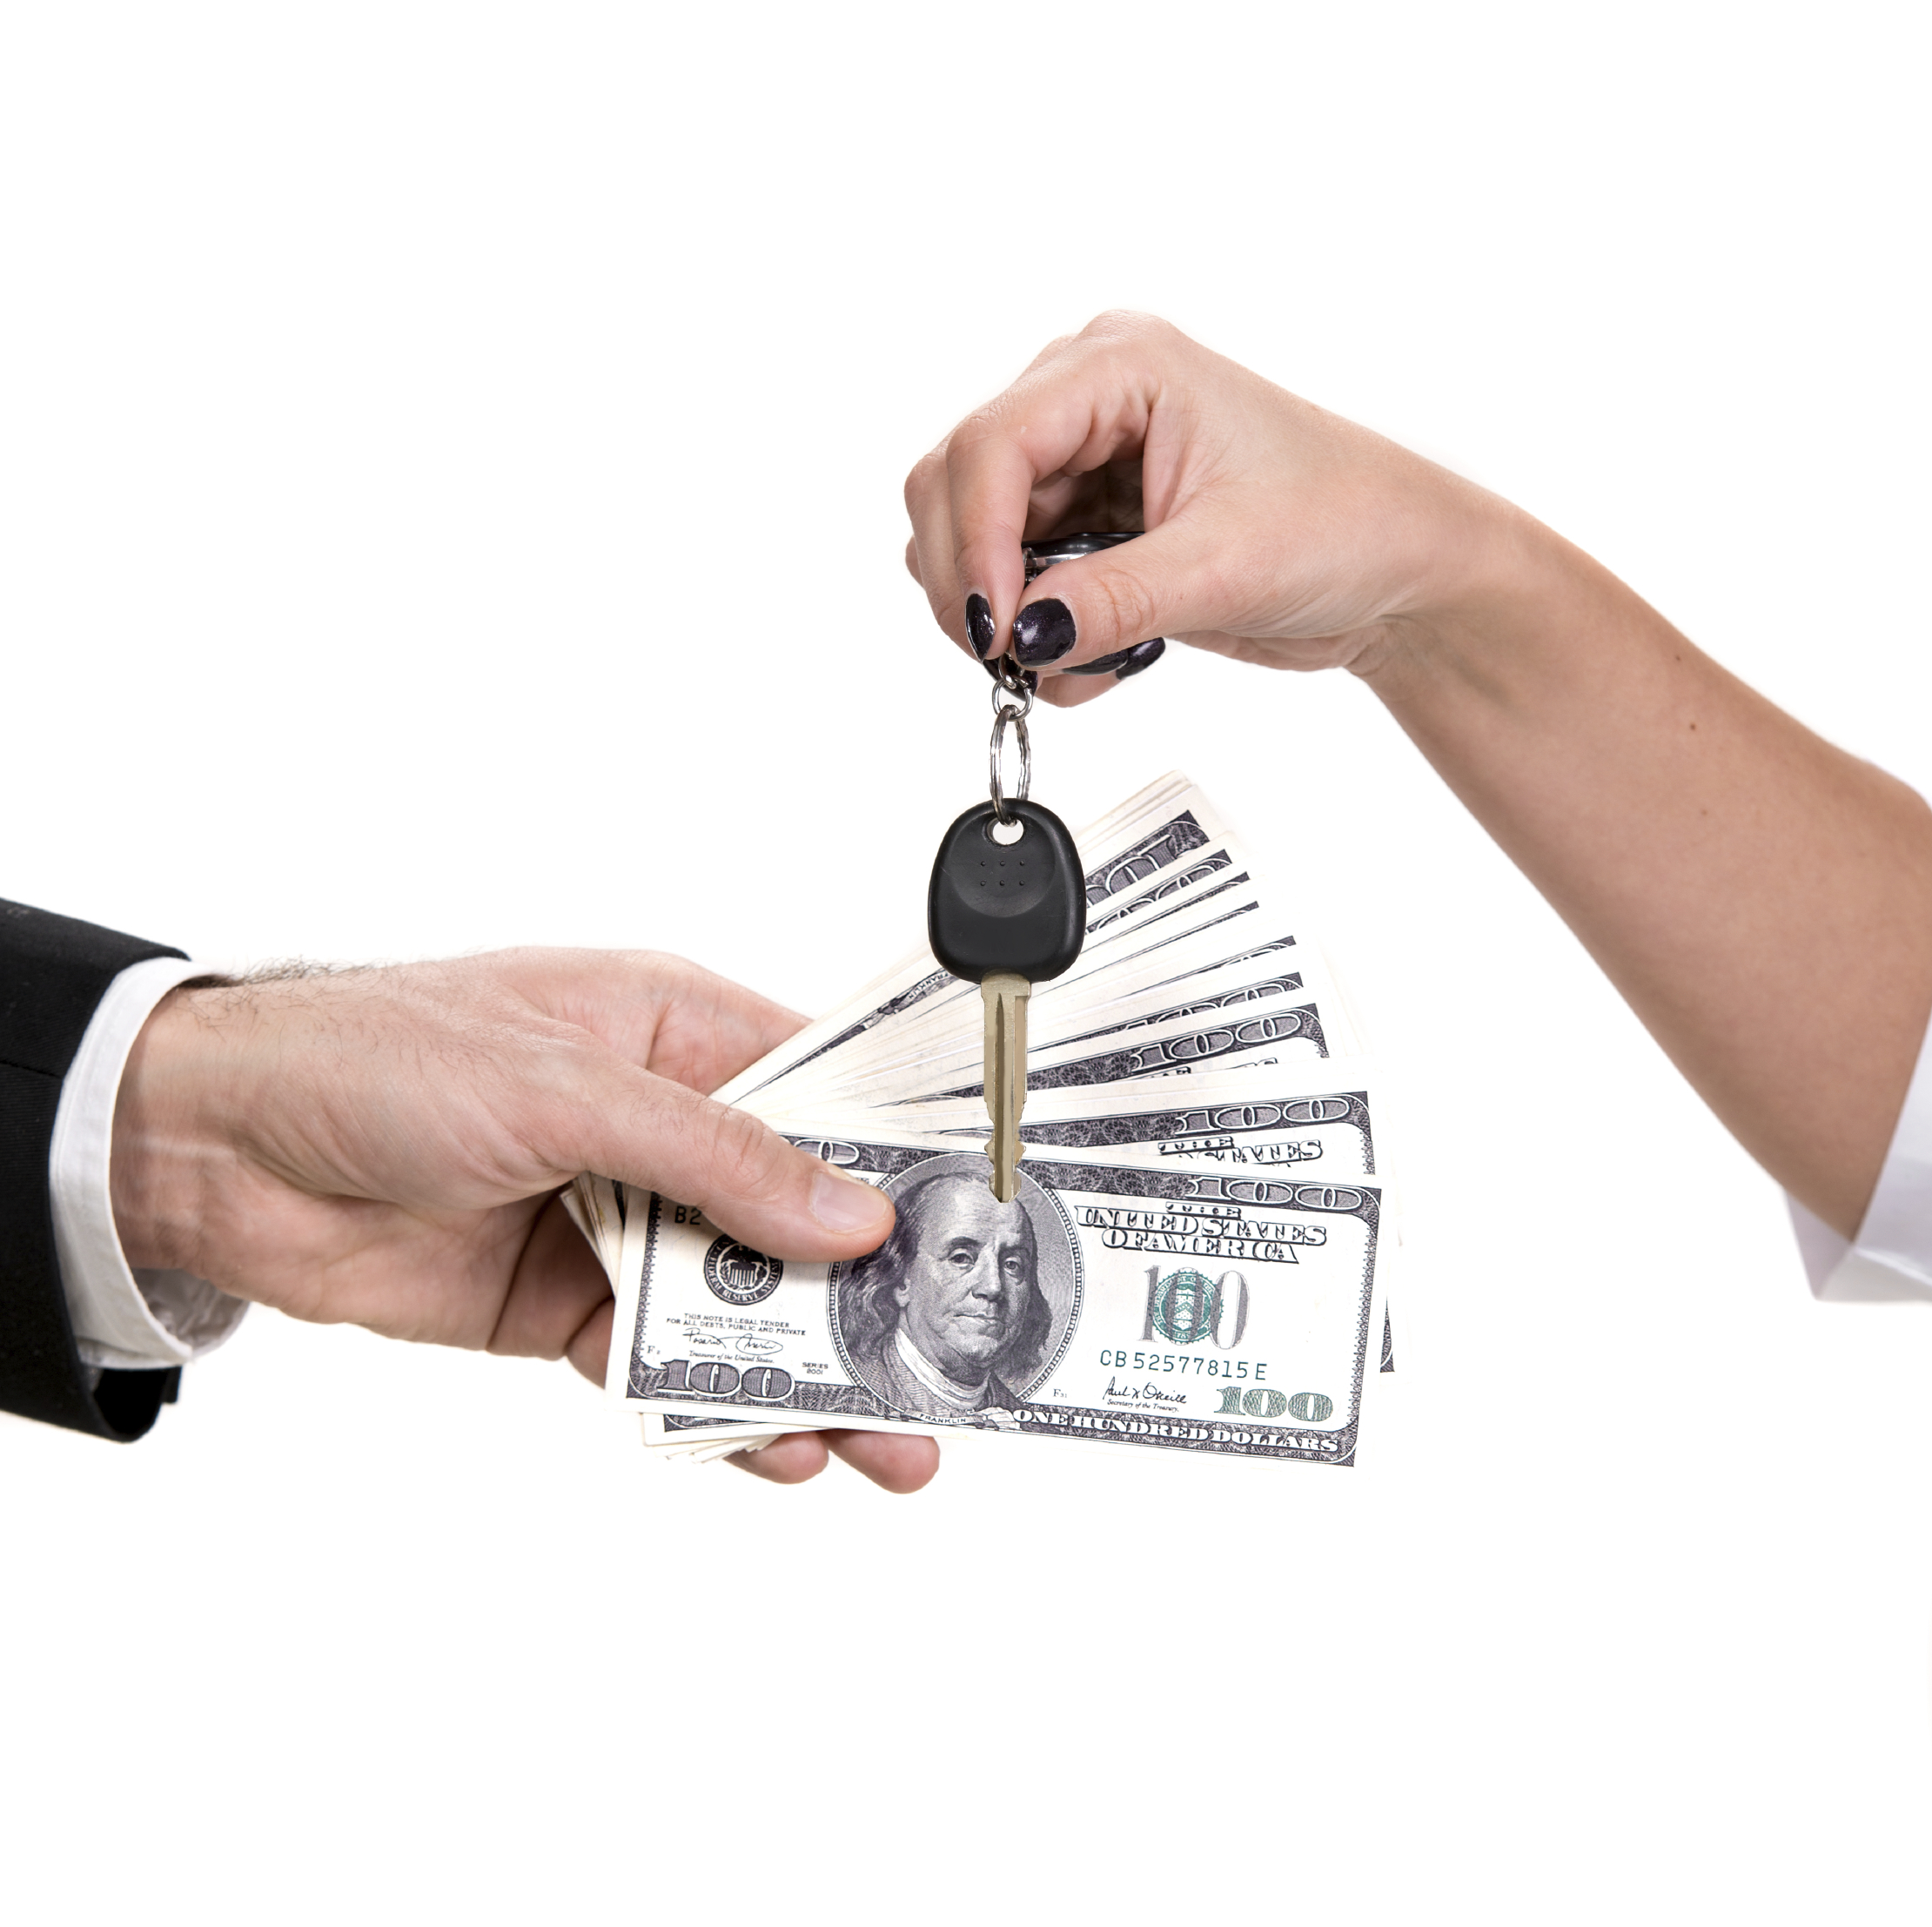 buying a car Certified used cars and vehicles for sale - includes warranty, roadside assistance and 7-day repurchase agreement.